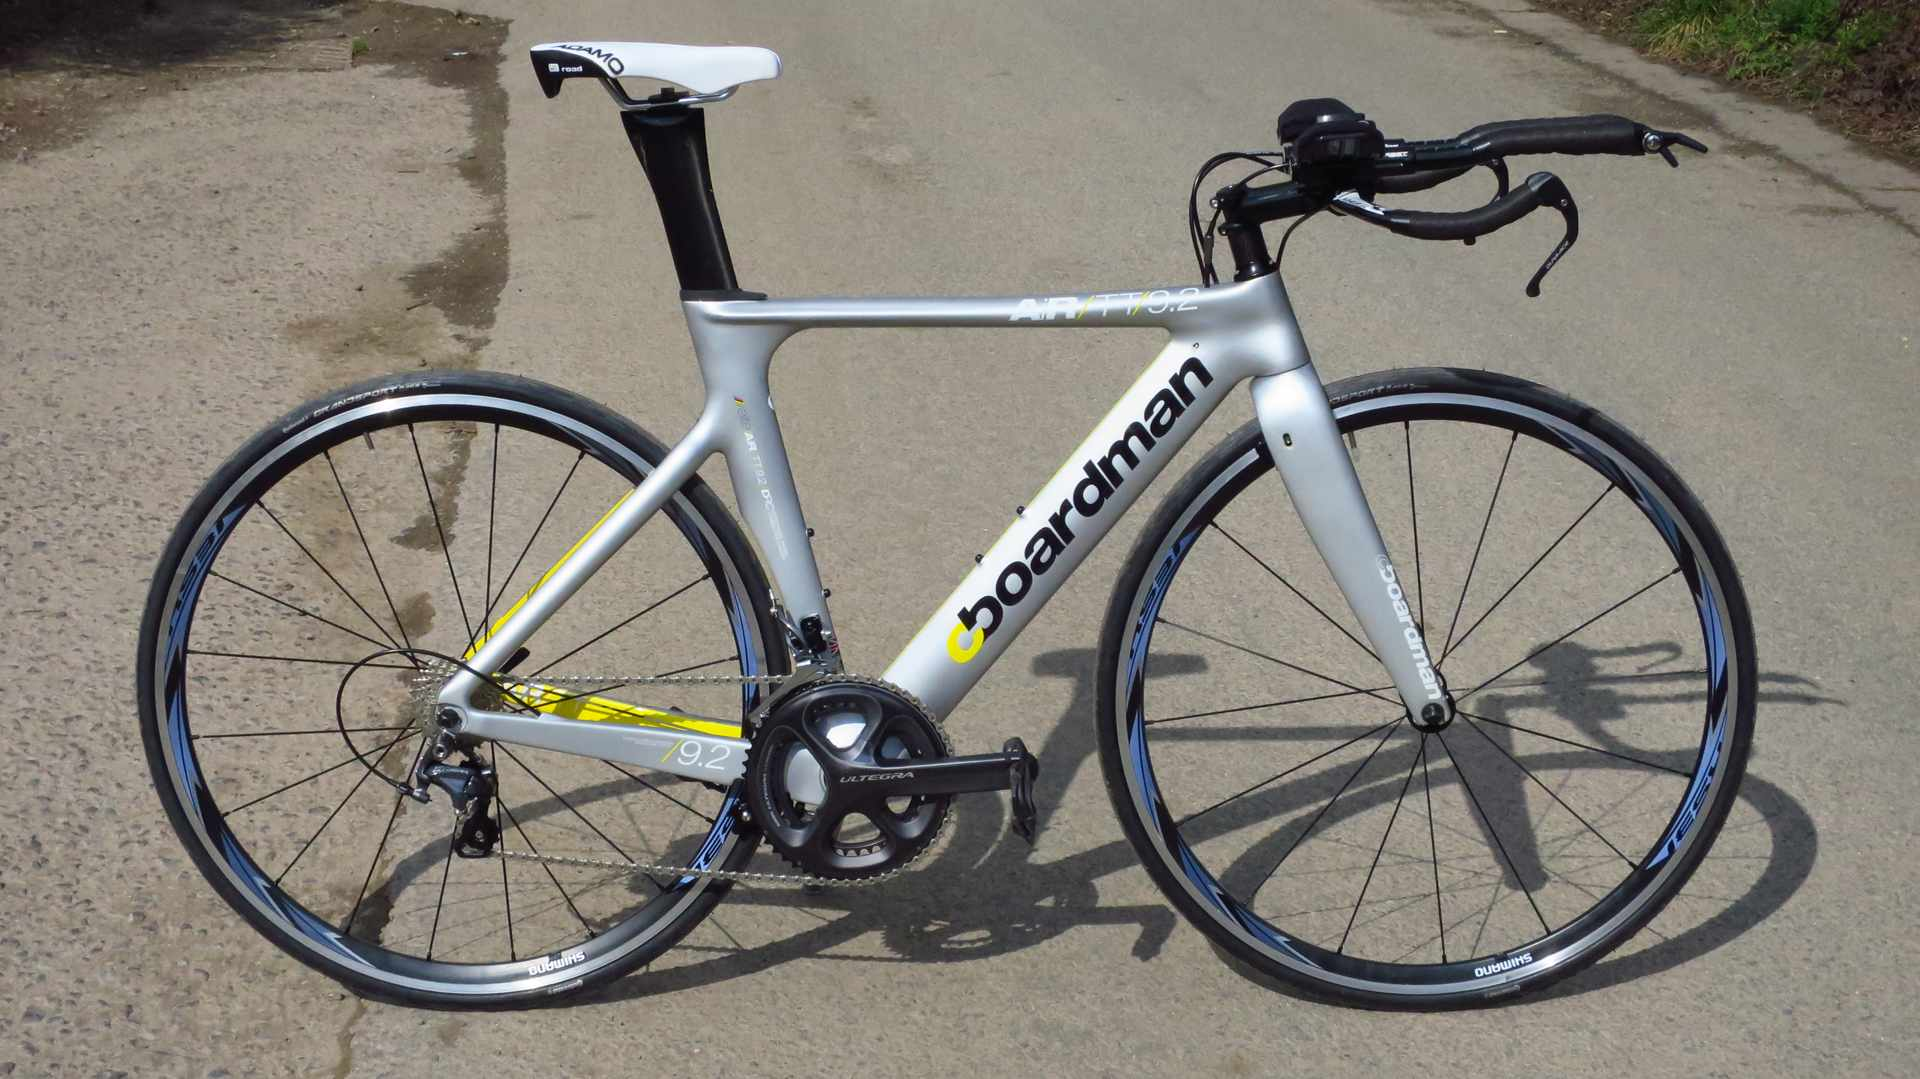 The Boardman AiR/TT 9.2 time trial / triathlon bike in its striking silver paintjob